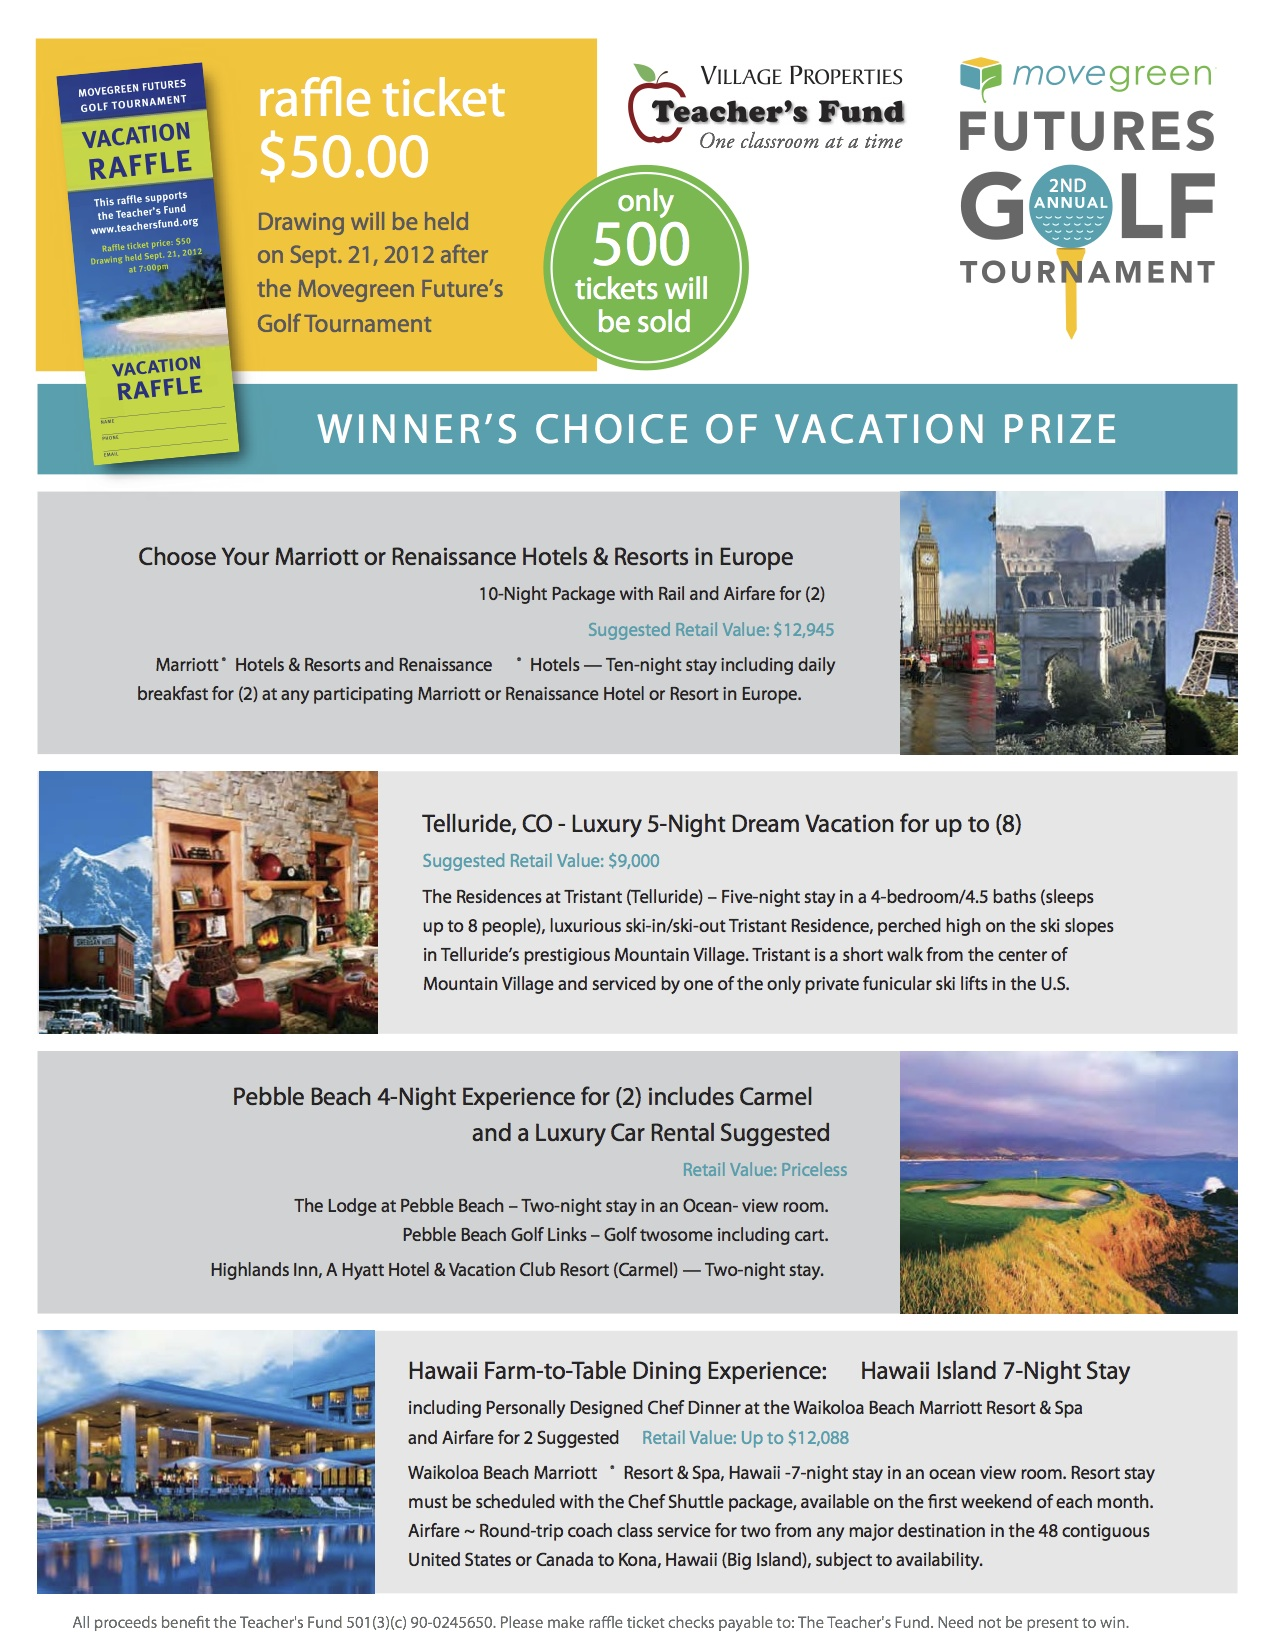 Village Properties Vacation Raffle to support The Teacher's Fund